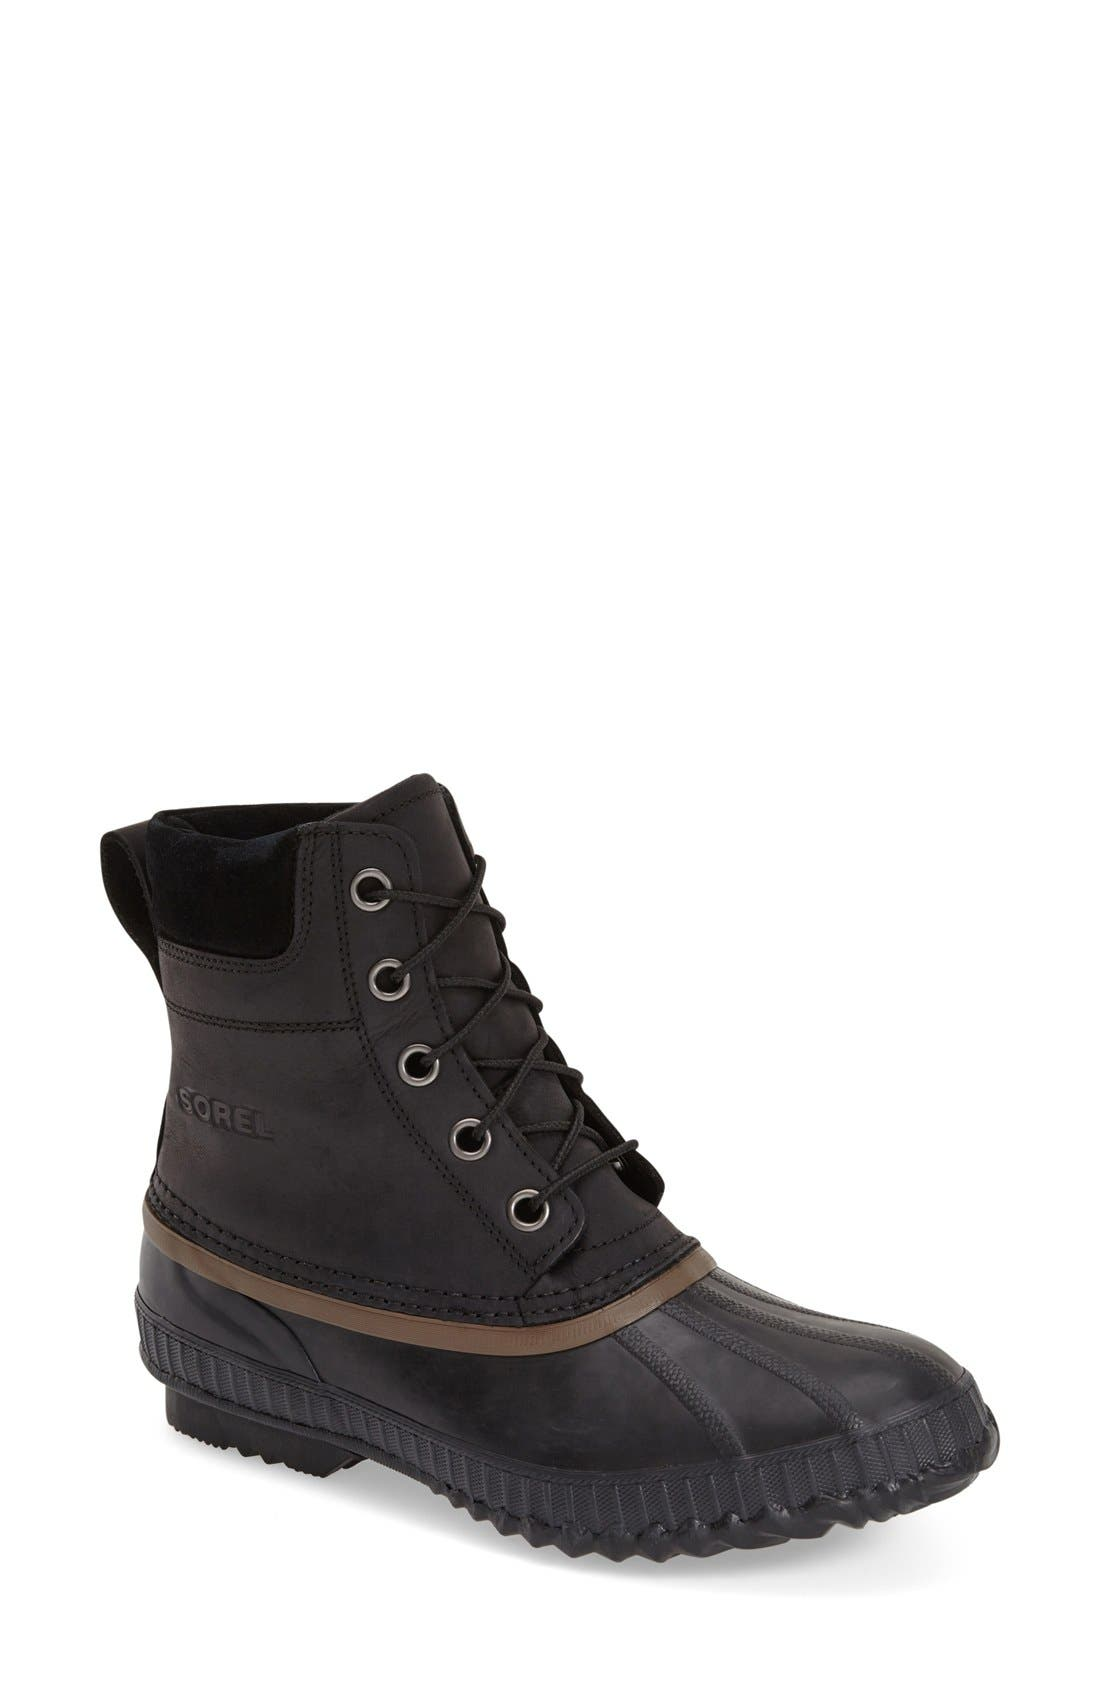 Main Image - SOREL'Cheyanne' Snow Boot